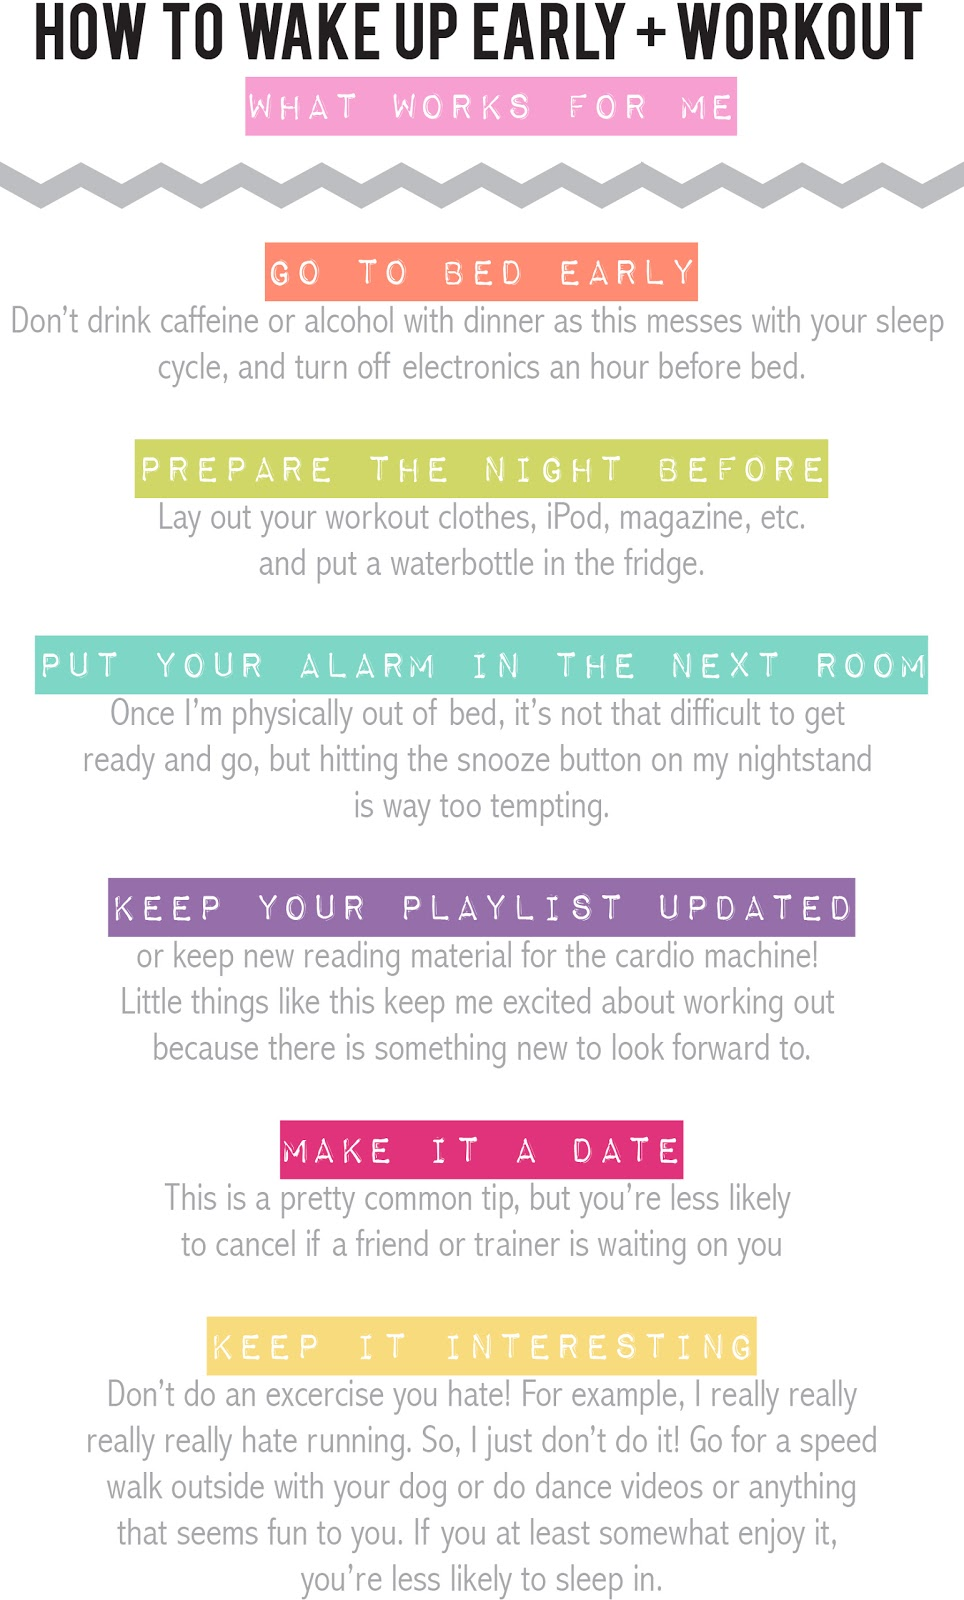 6 Tips For Getting Yourself To Wake Up Early And Workout - Infographic